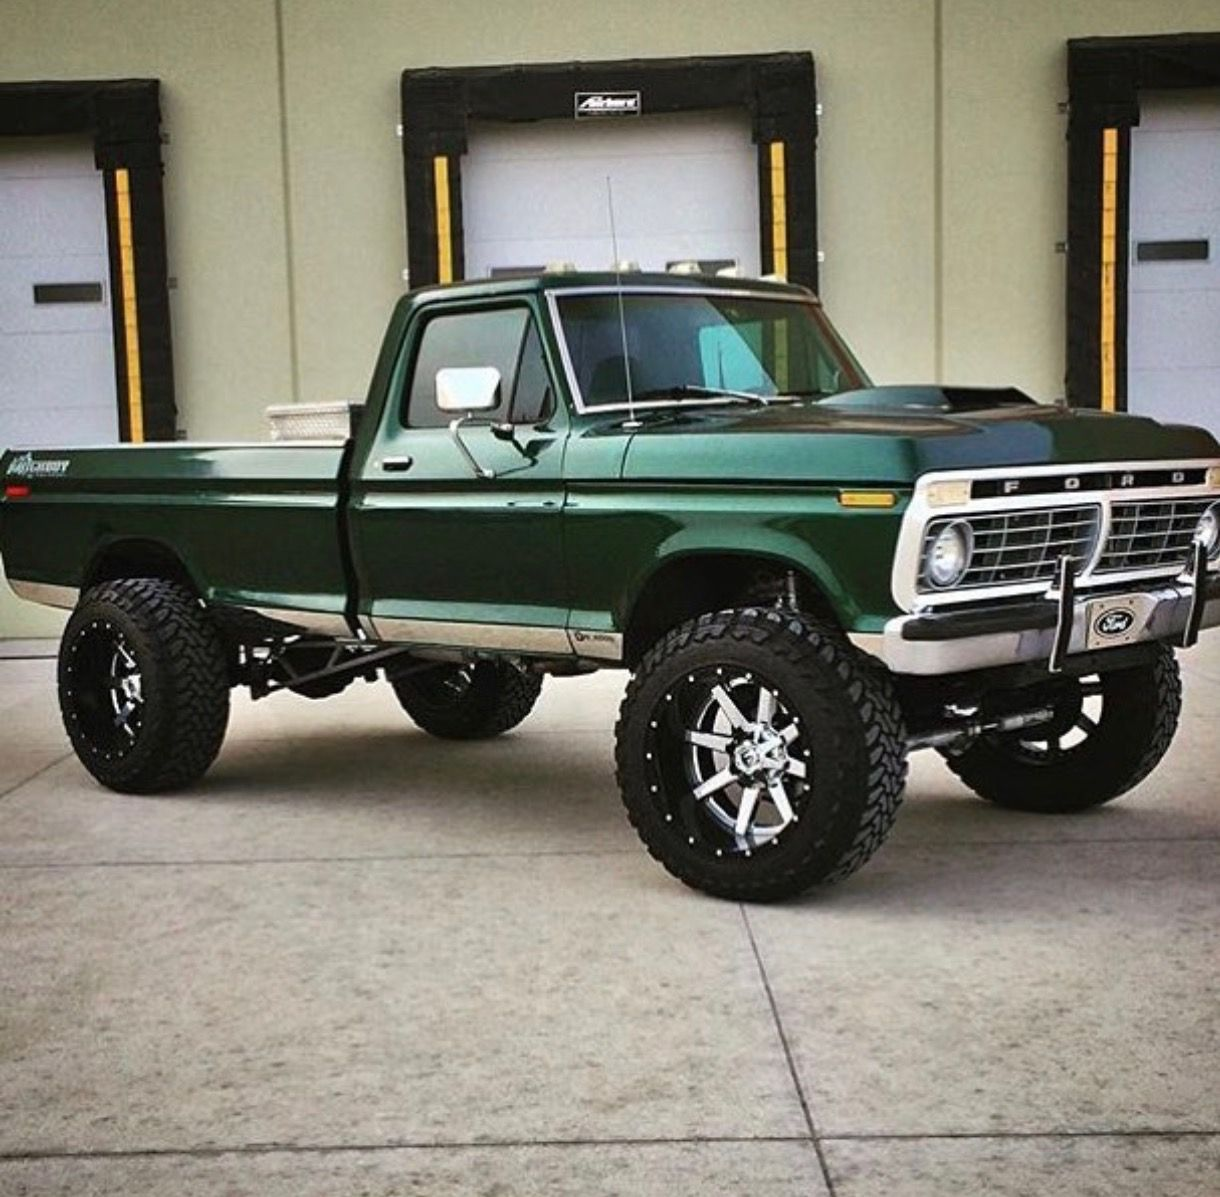 Ford Trucks: My Next Ford Will Be A Two-tone With This Green.